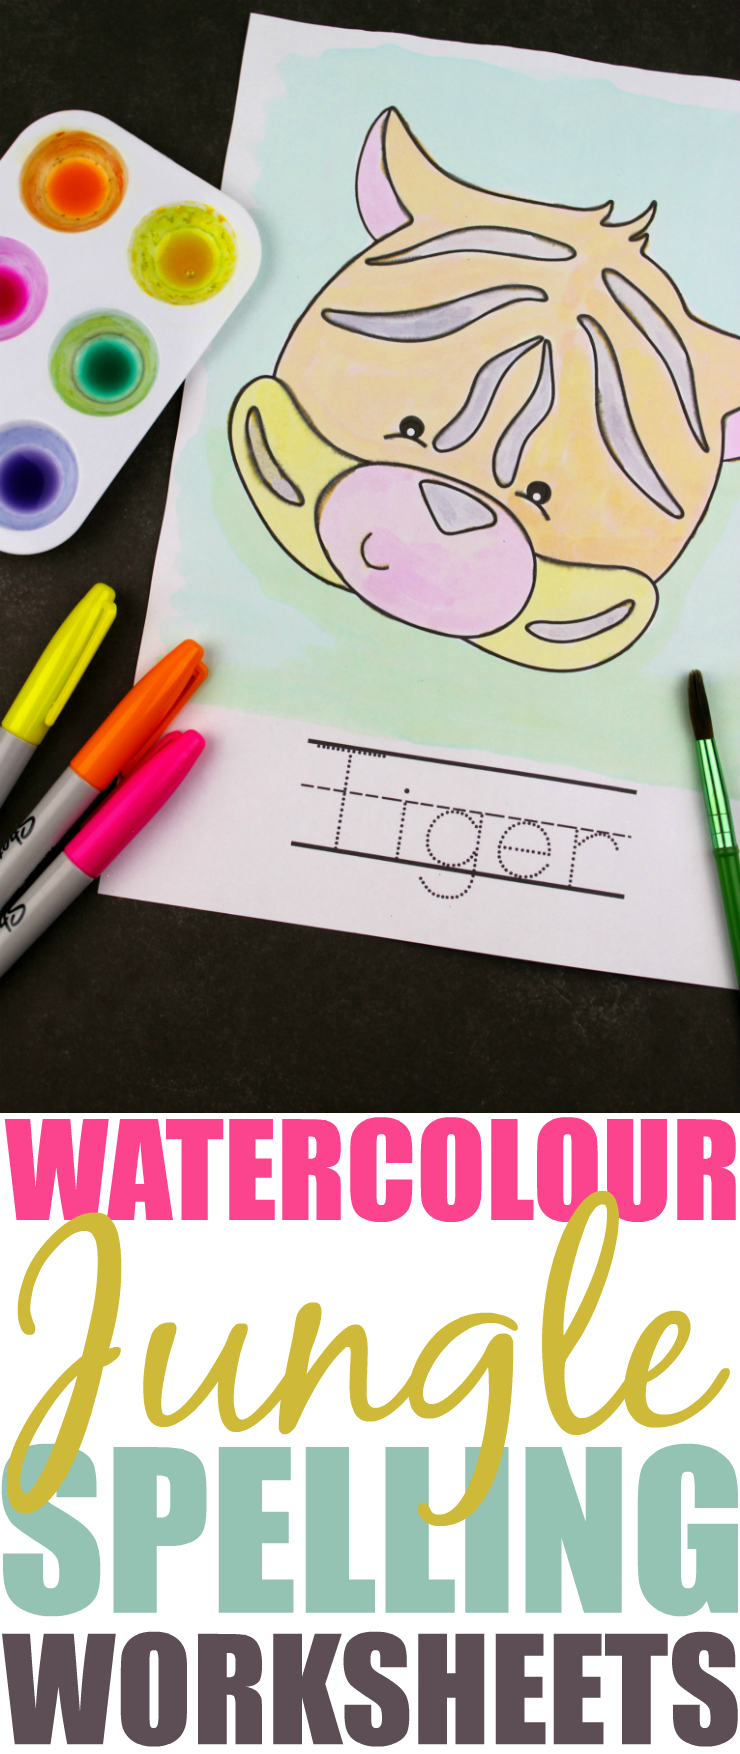 Watercolour Jungle Friends Spelling Worksheets